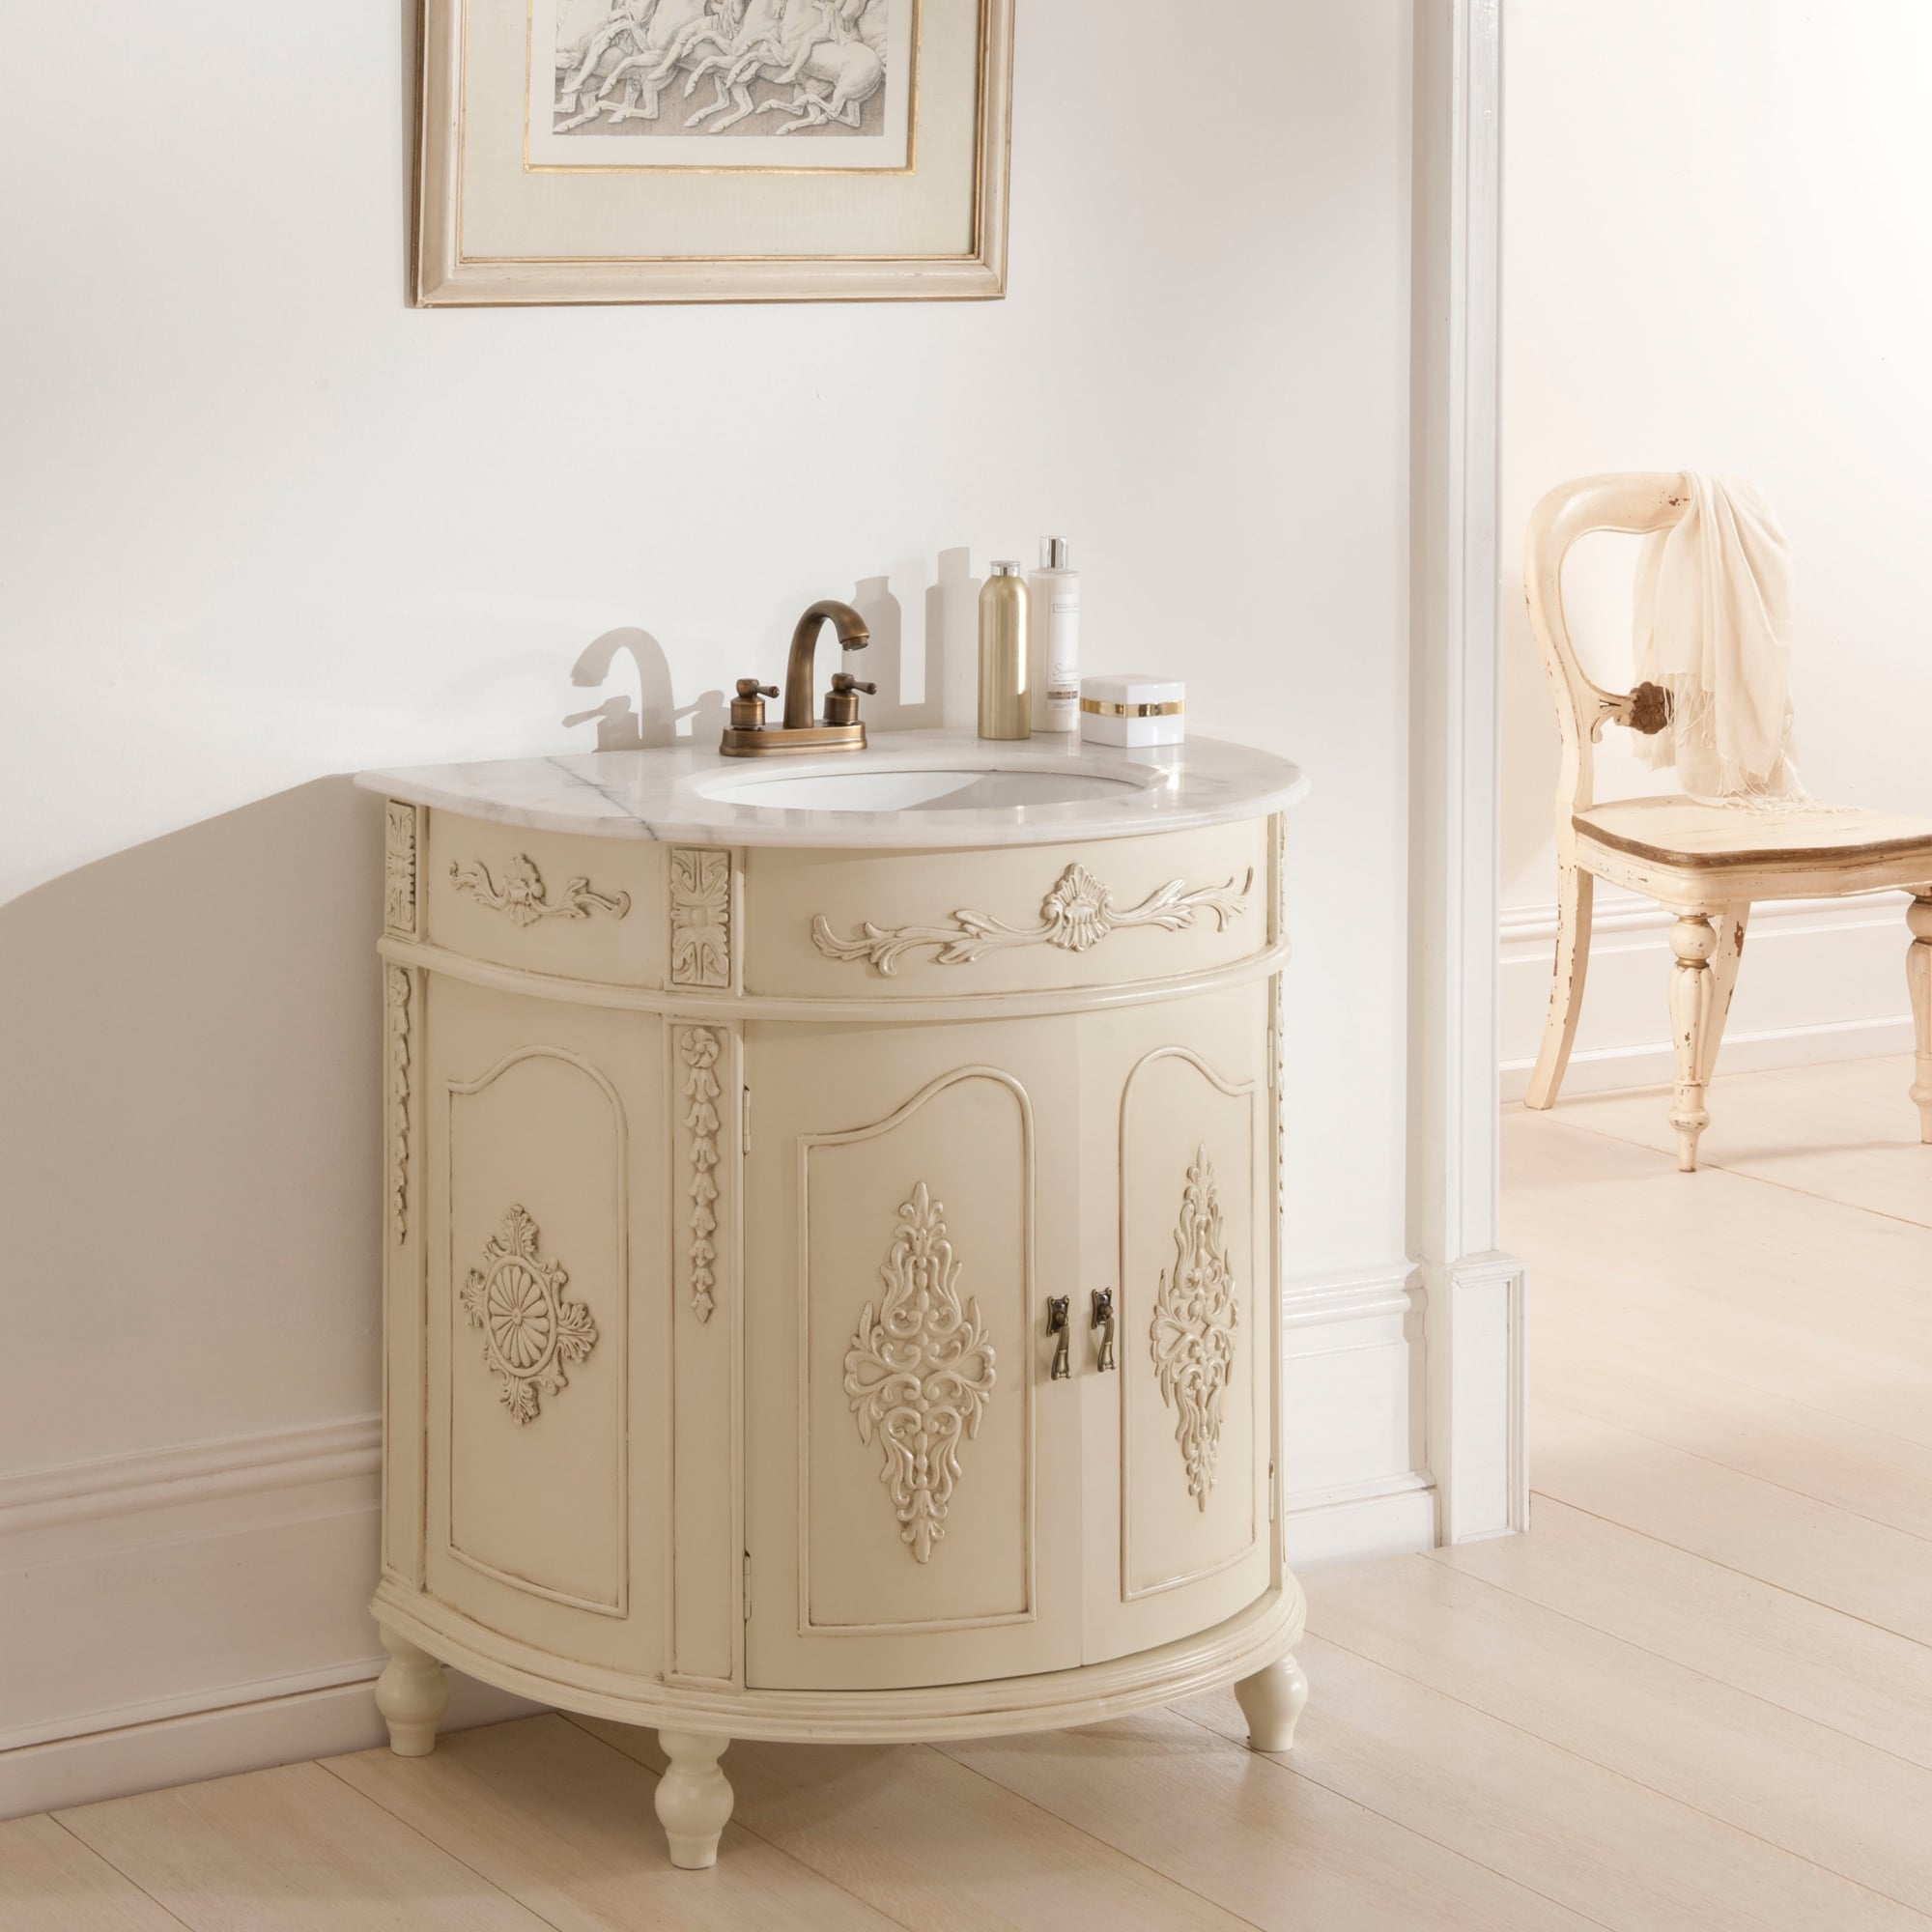 Antique french vanity unit ivory bathroom furniture for Antique bathroom vanity units